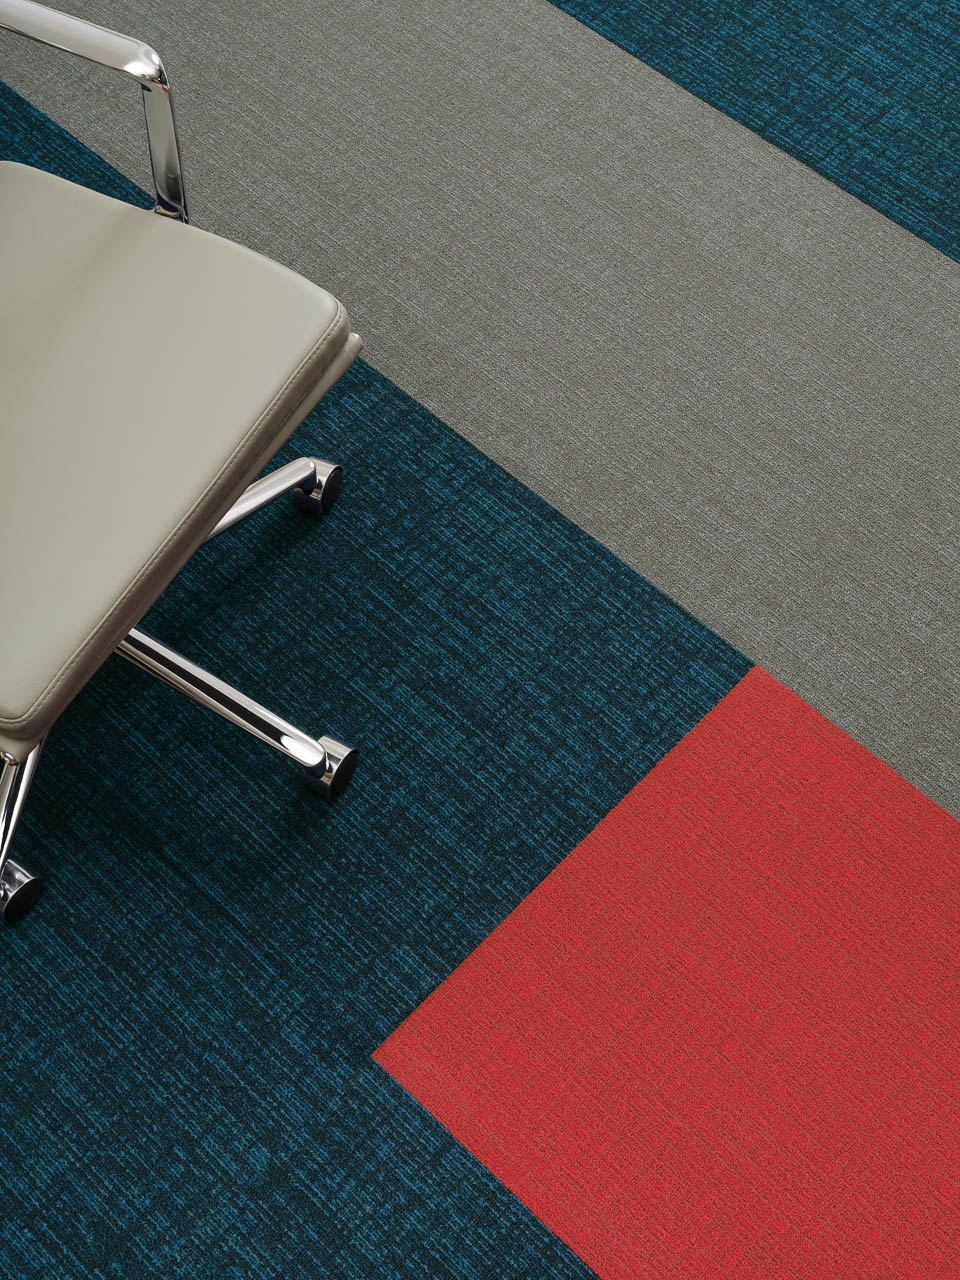 Amtico Colour Anchor Wink, Rumpus und Poppy in der Brick Verlegemethode